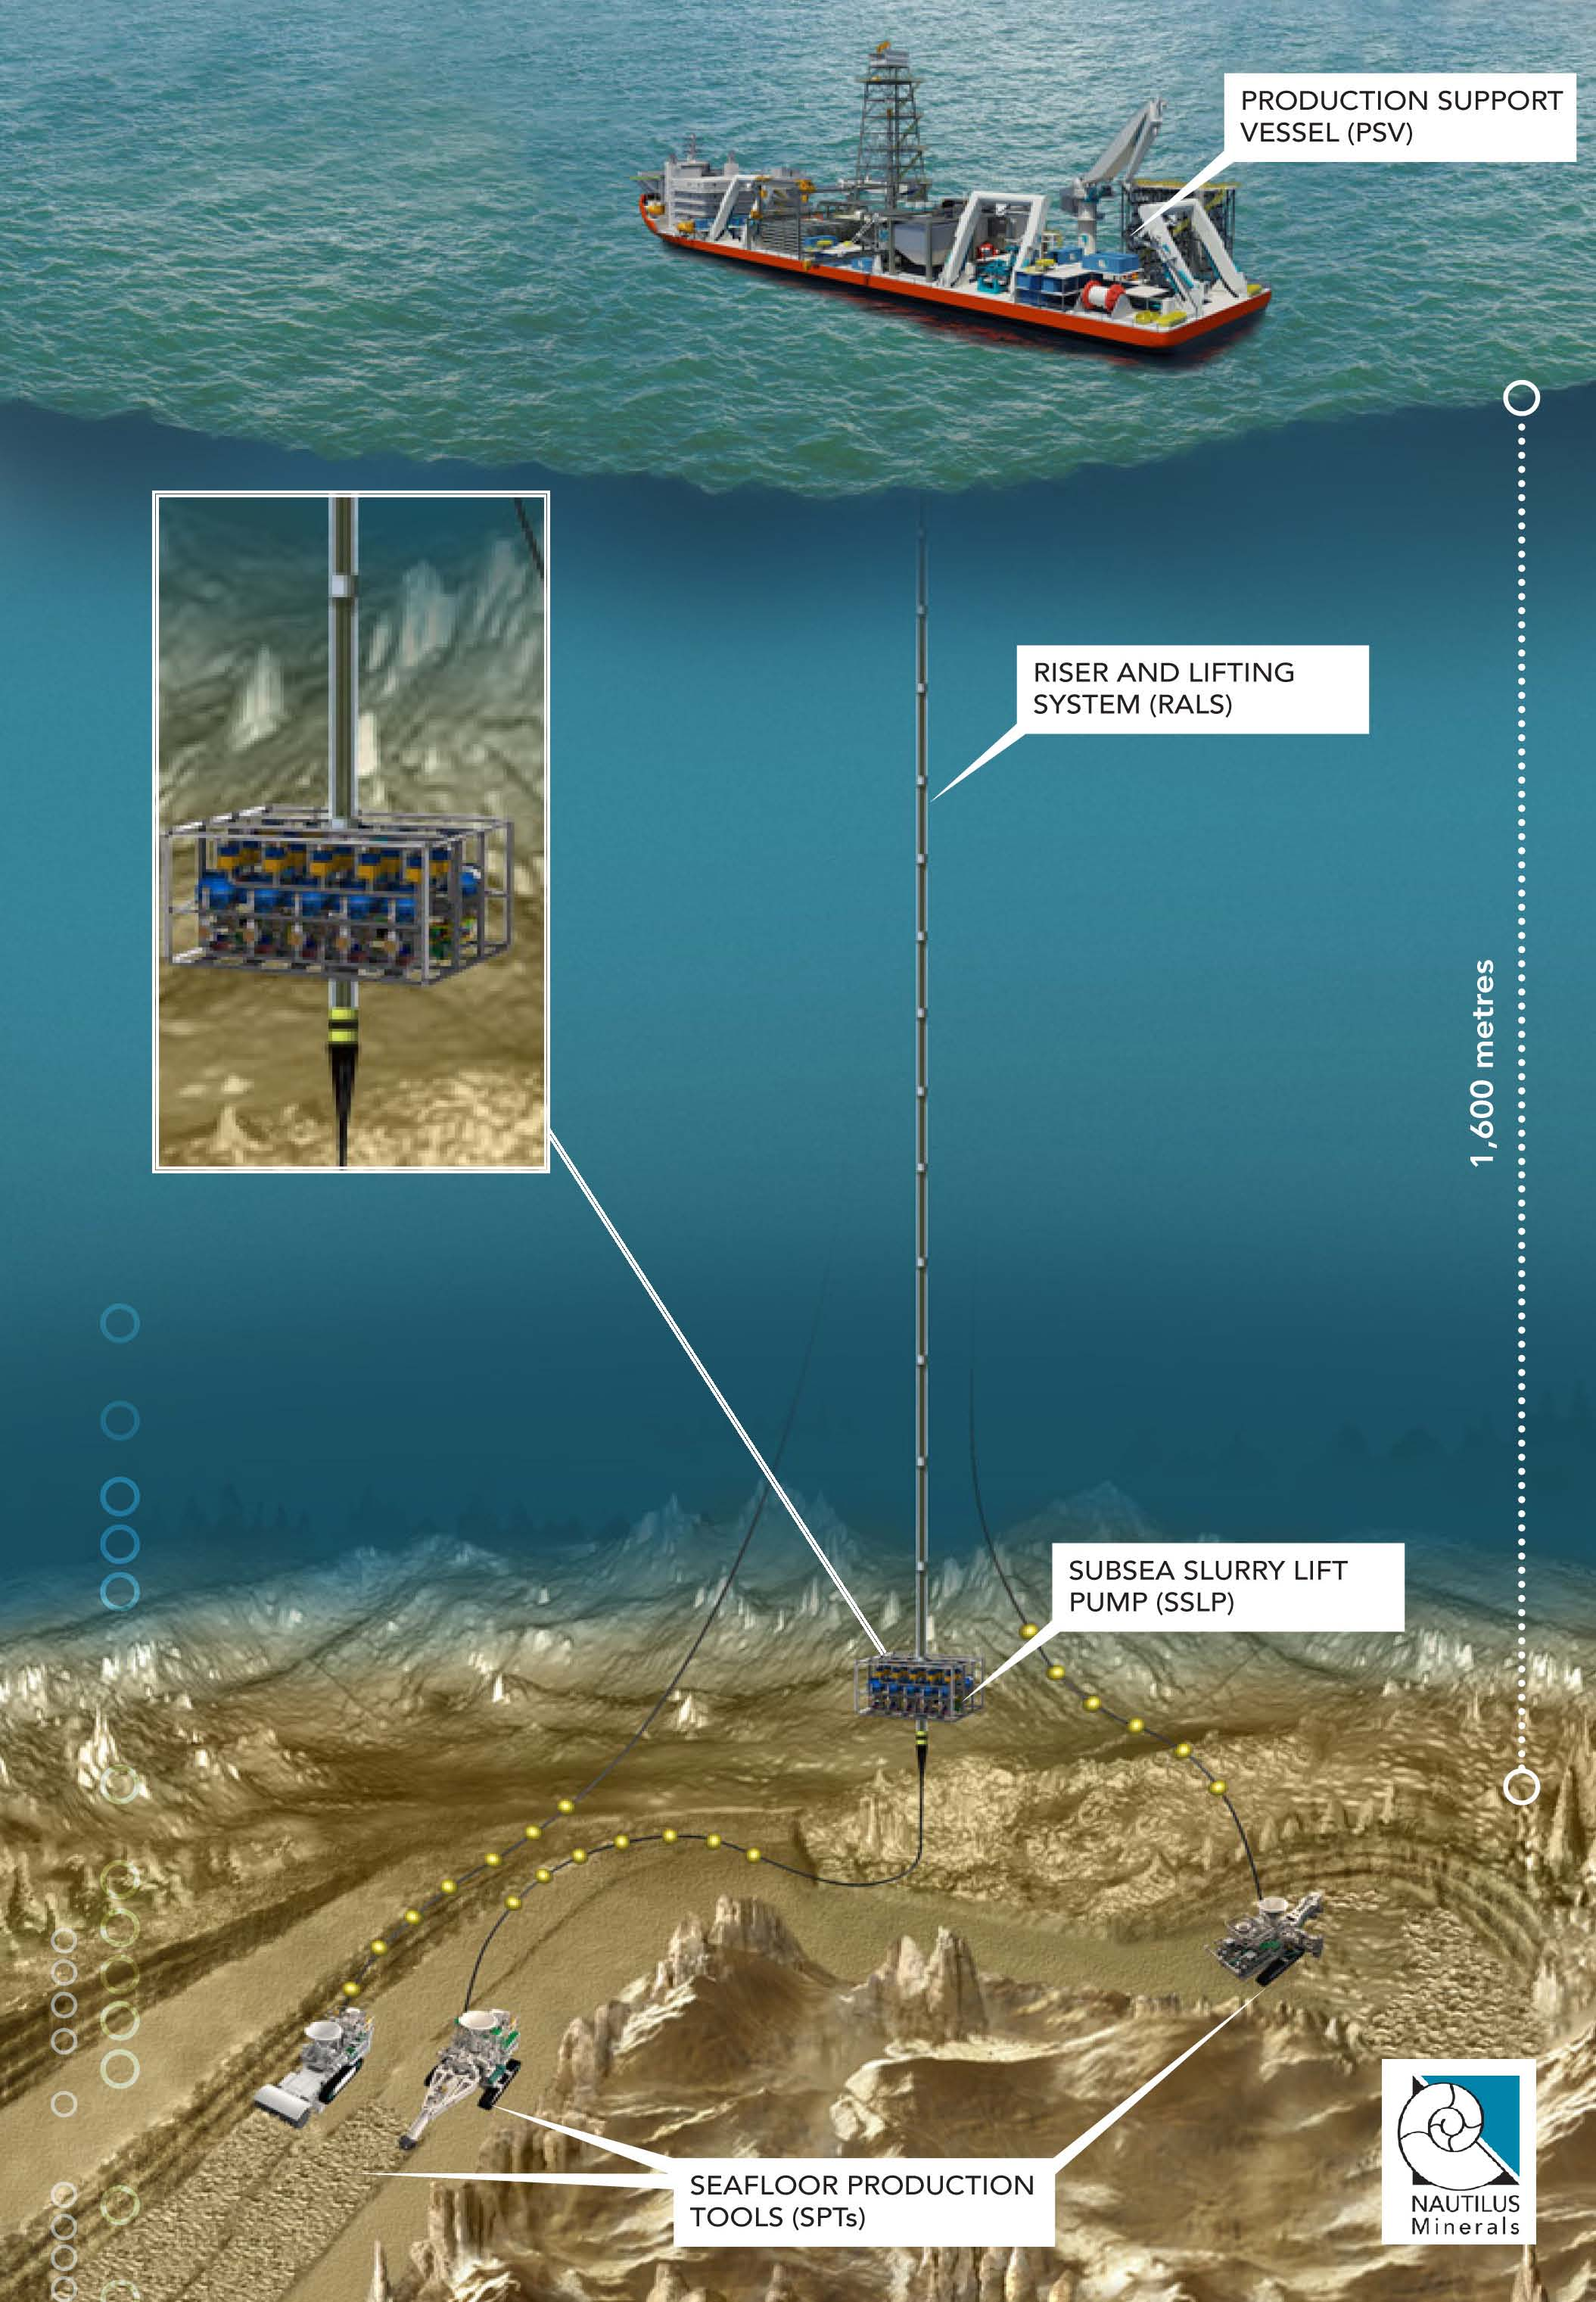 Graphic showing seafloor production system with a Production Support Vessel on surface and equipment on seafloor.